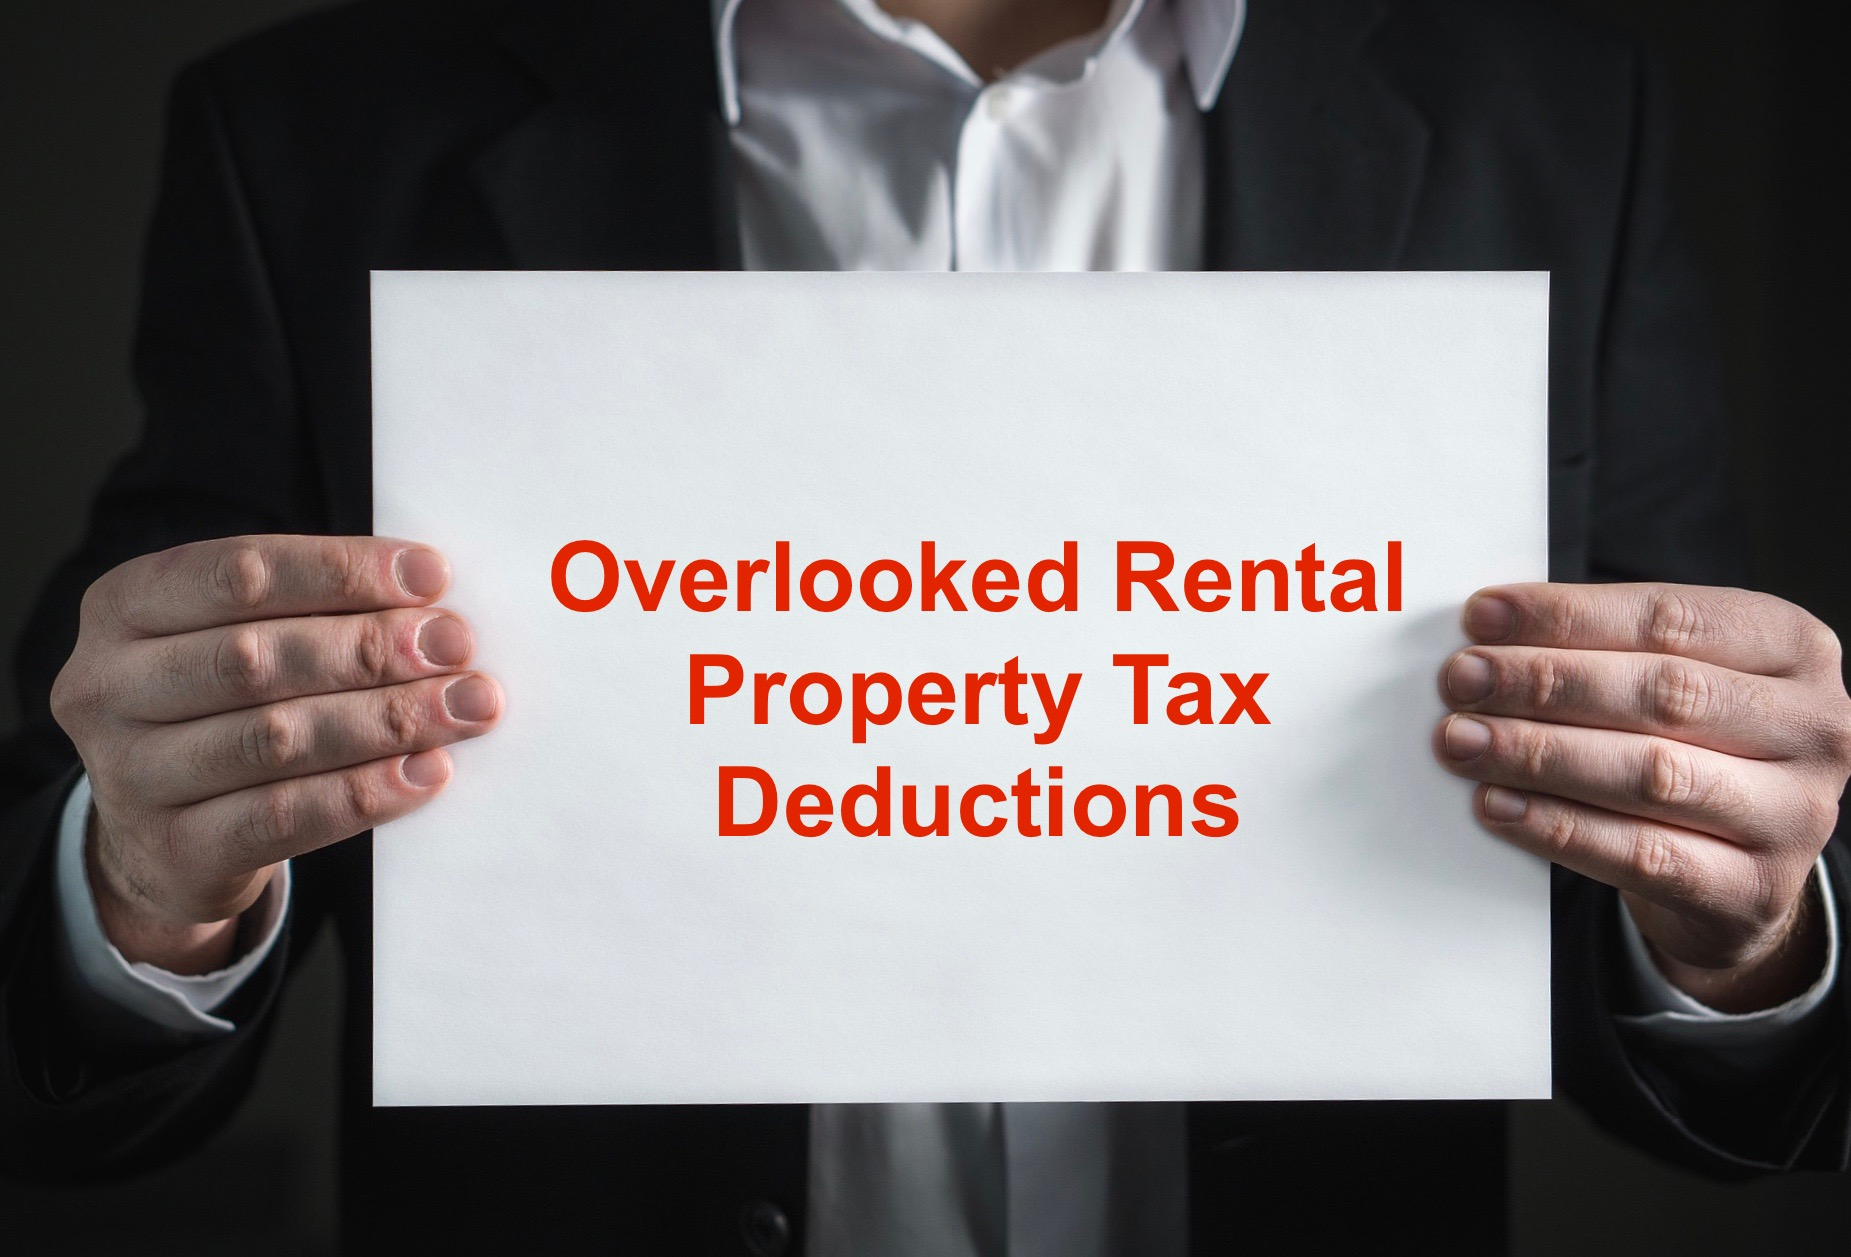 Overlooked Rental Property Tax Deductions